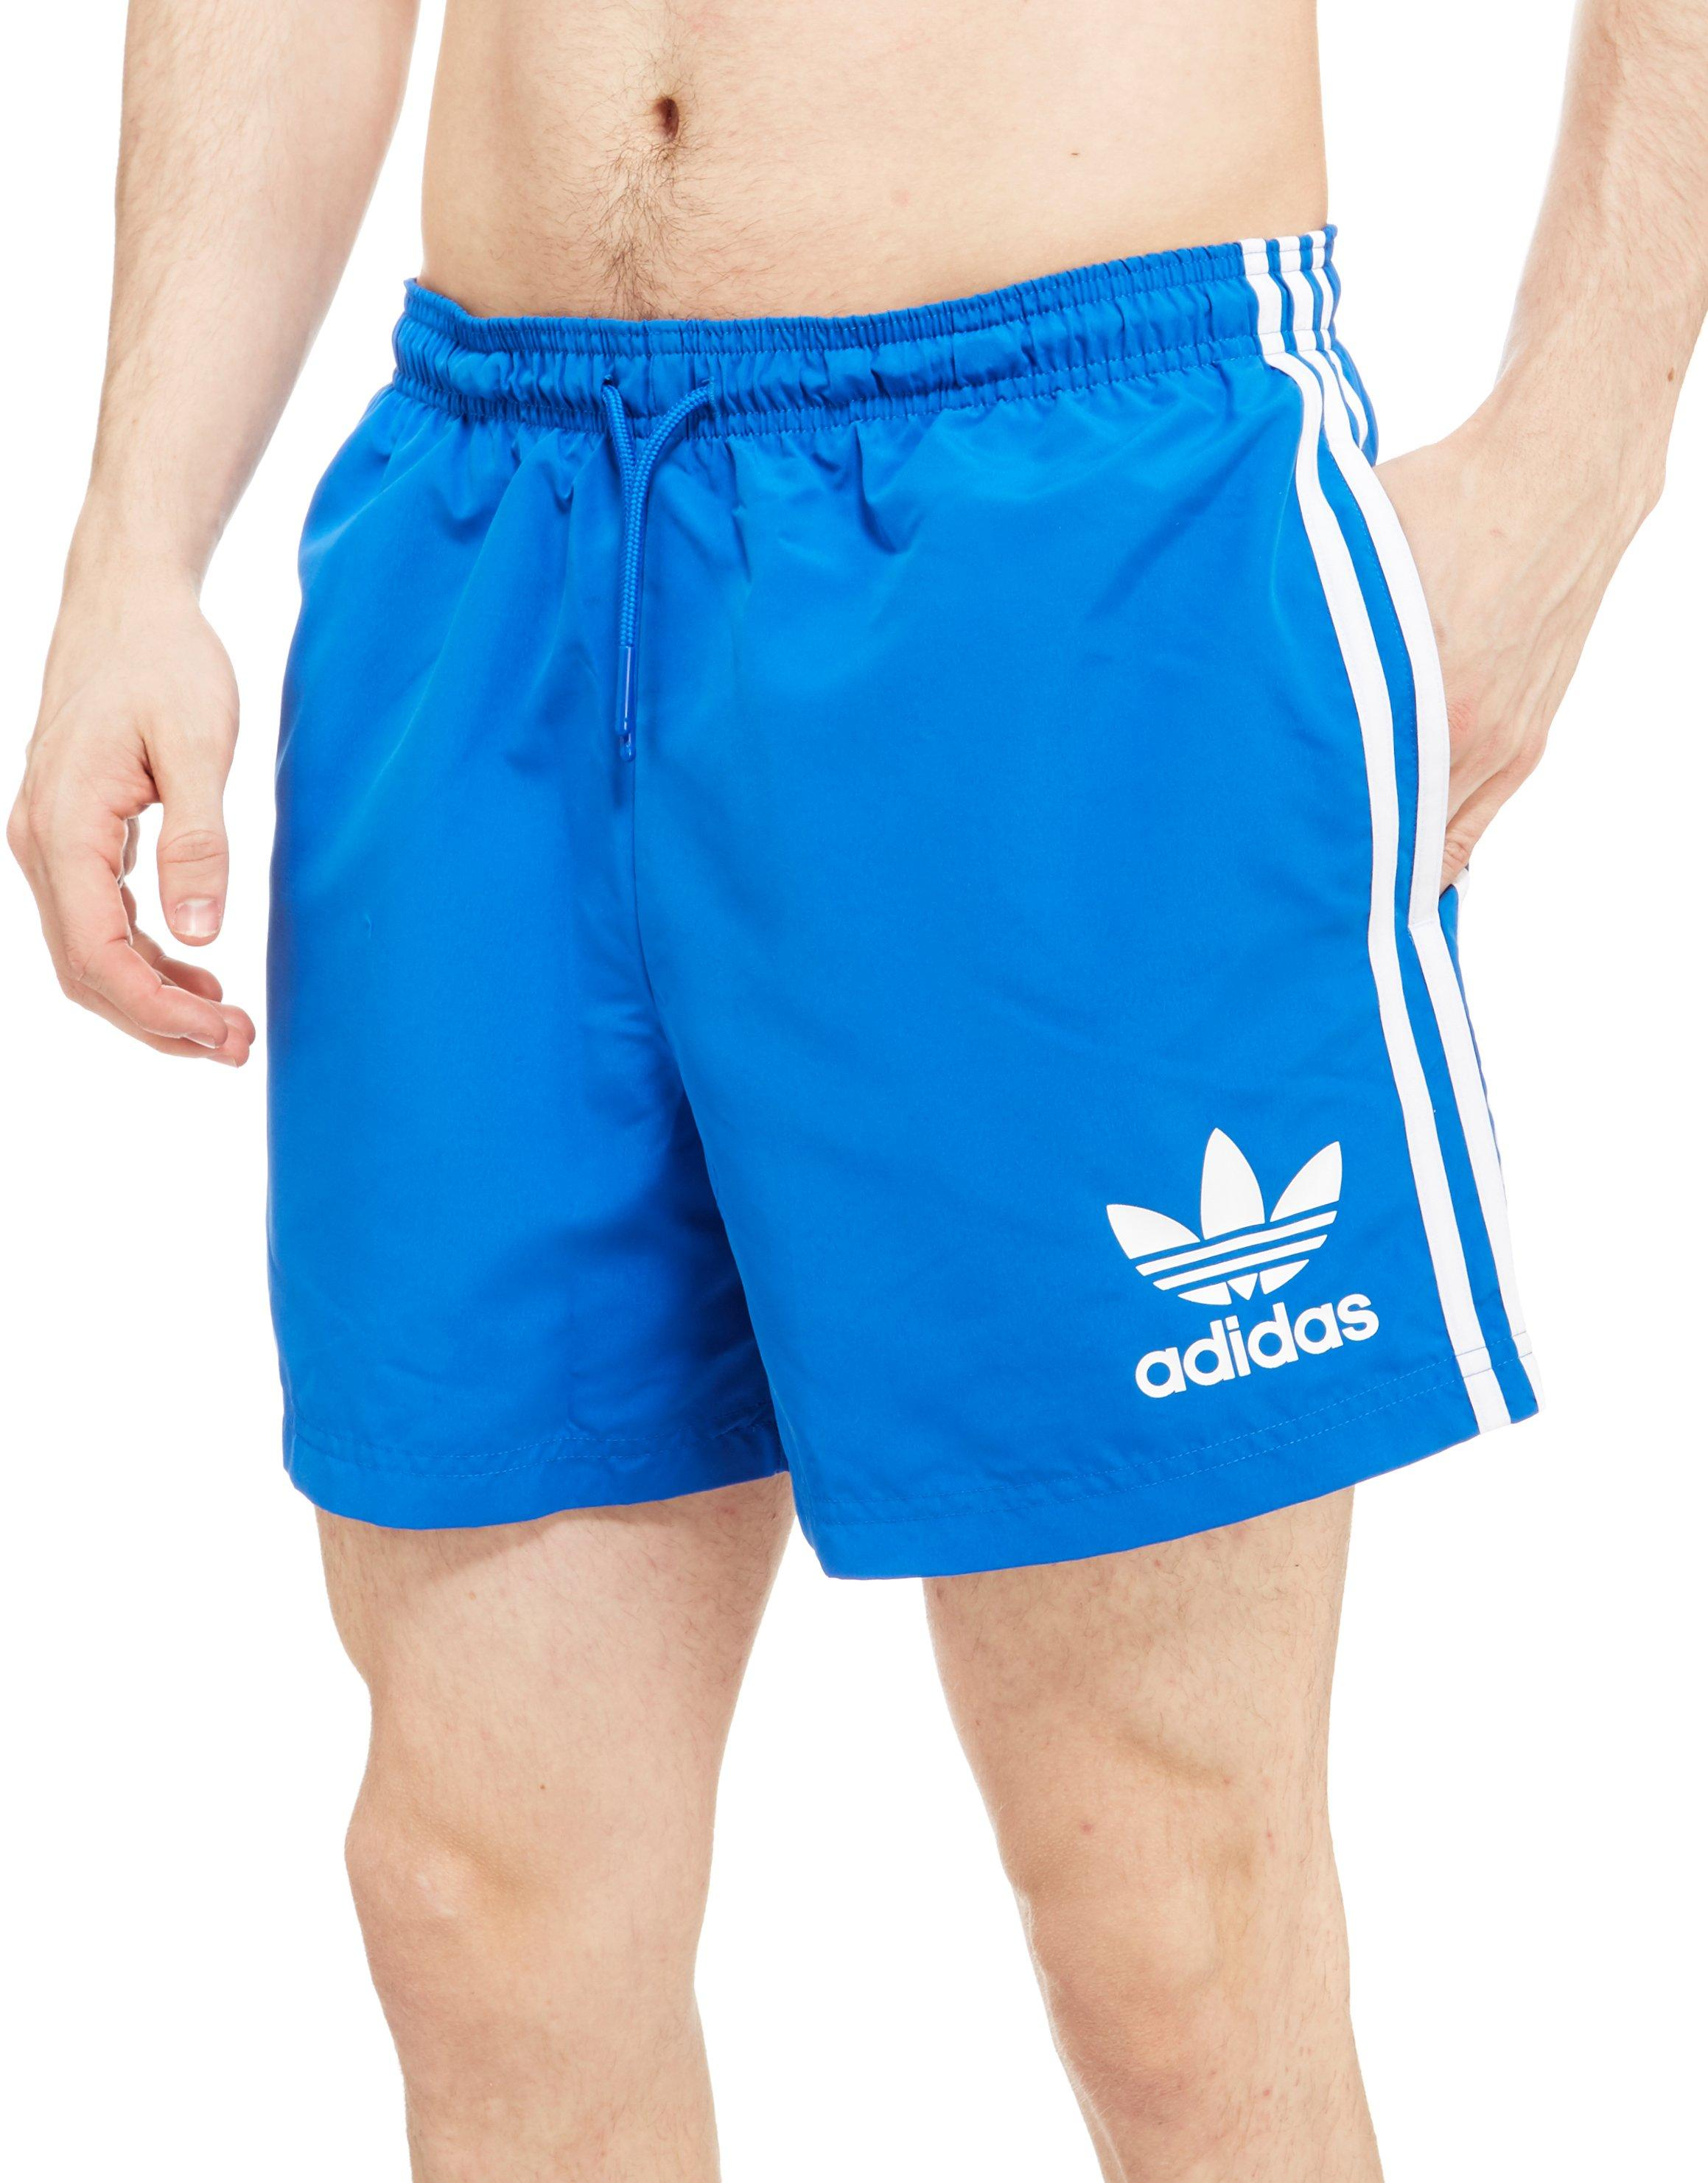 How to select mens swim shorts